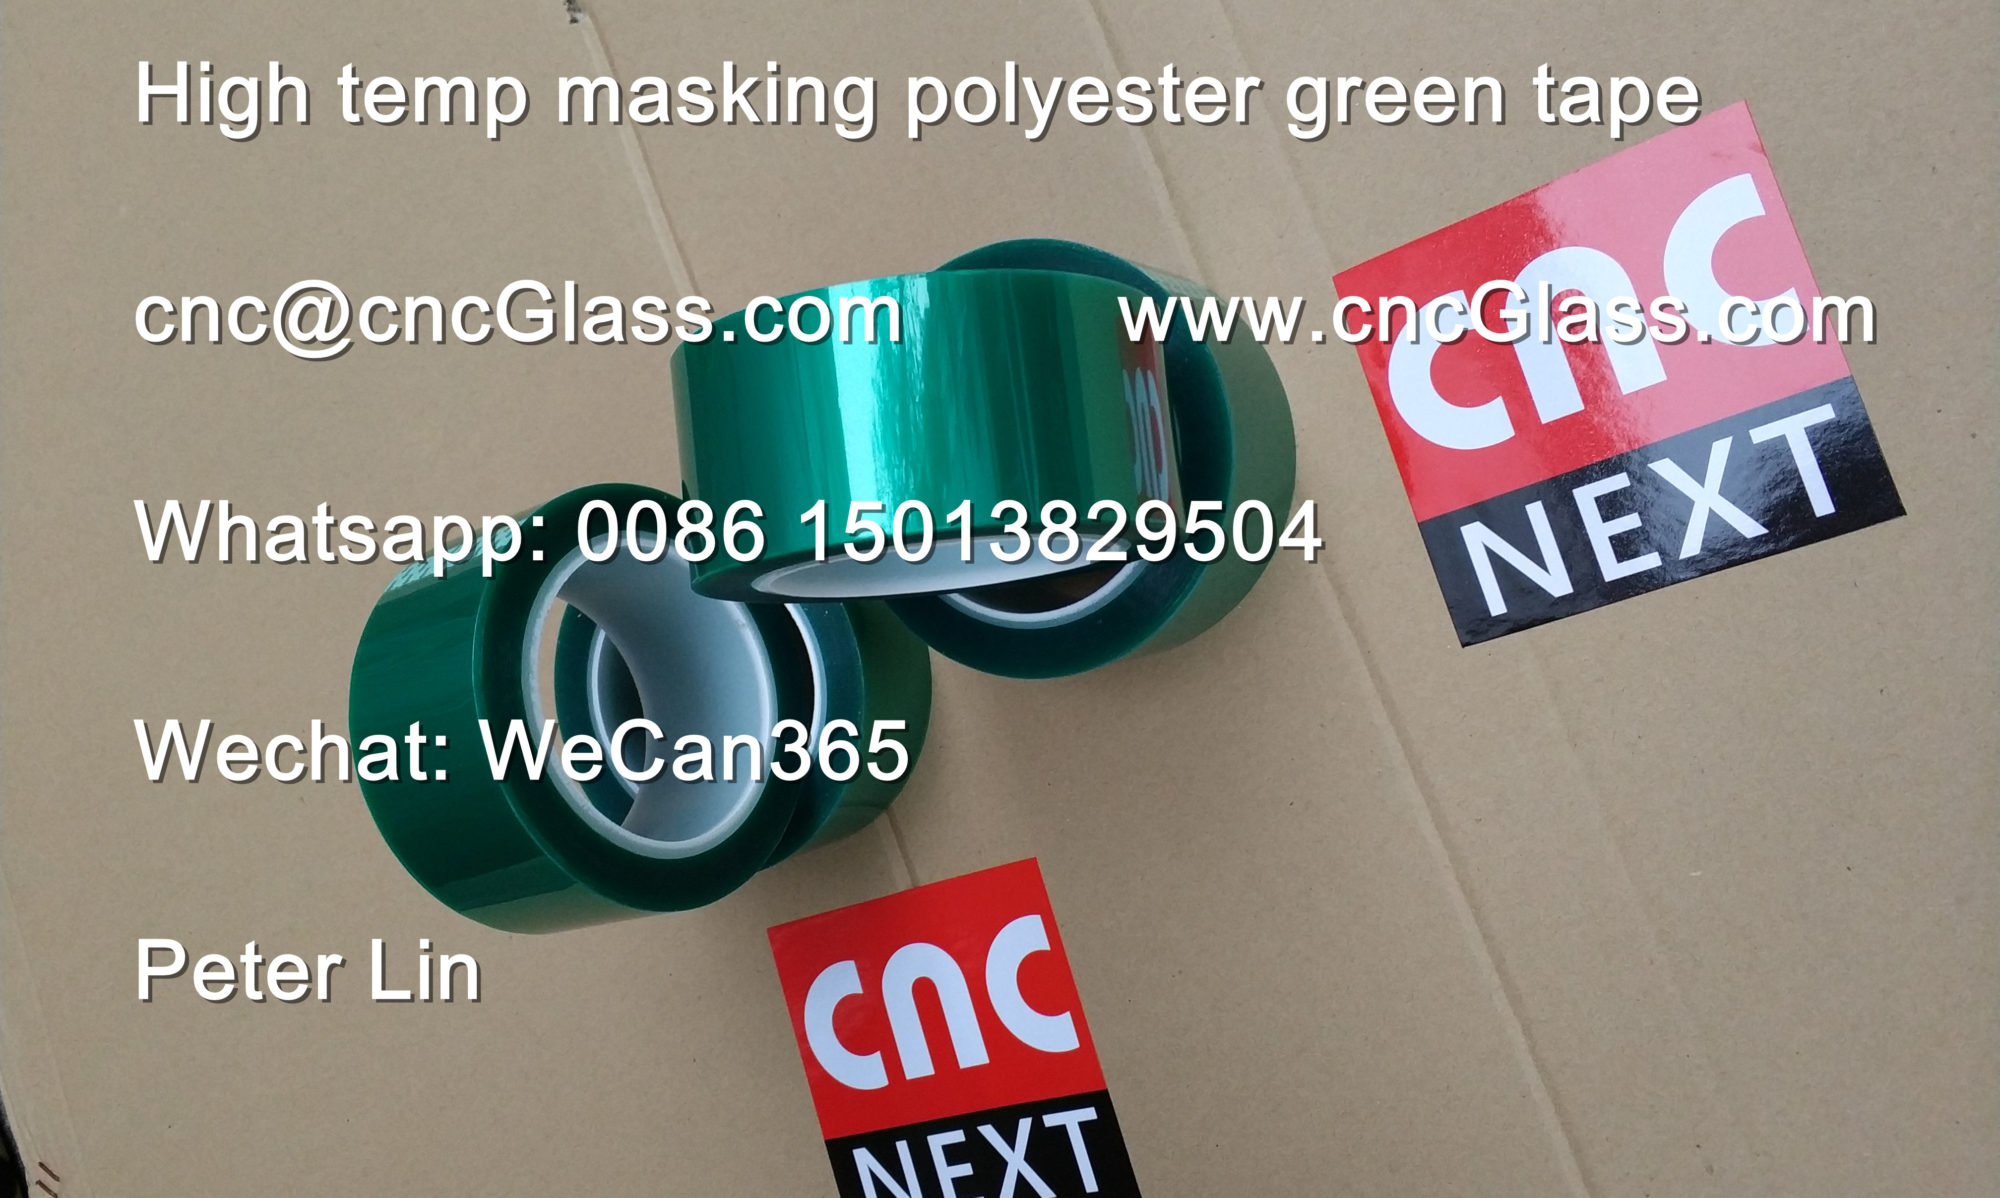 CNCnext TECH High Temperature Masking Tapes